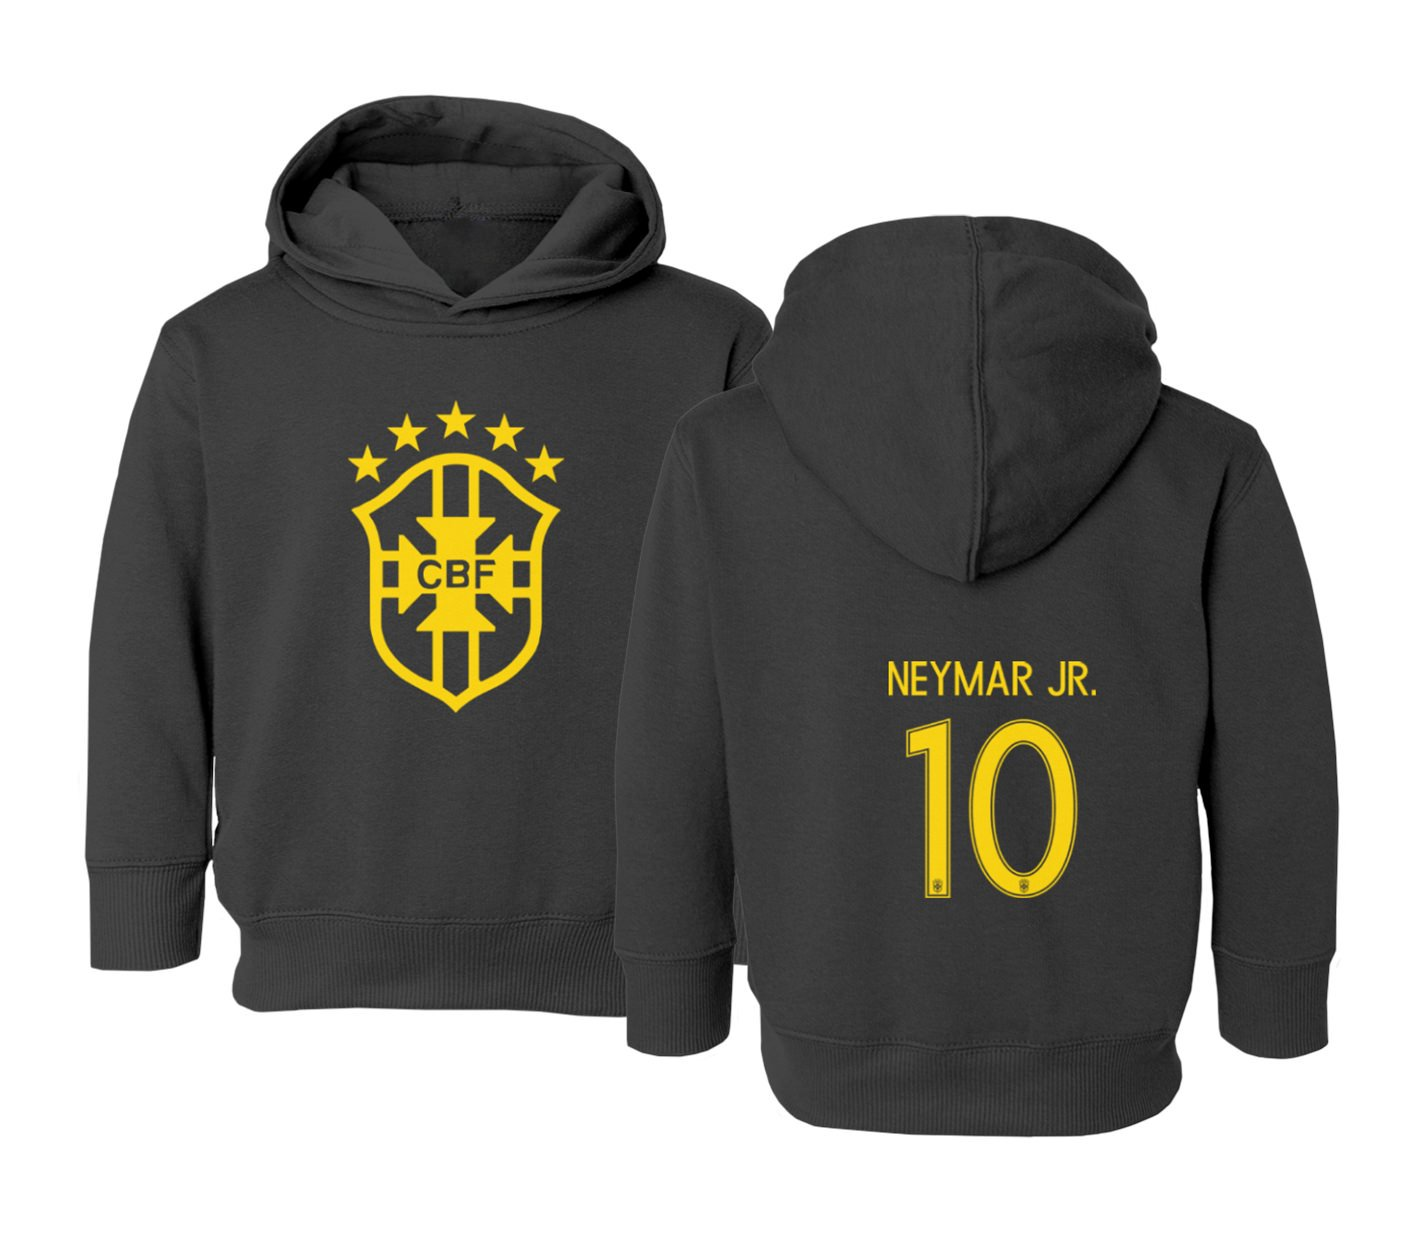 Amazon.com  Tcamp Brazil 2018 National Soccer  10 NEYMAR JR. World  Championship Little Kids Girls Boys Toddler Hooded Sweatshirt  Sports    Outdoors 00d46feae